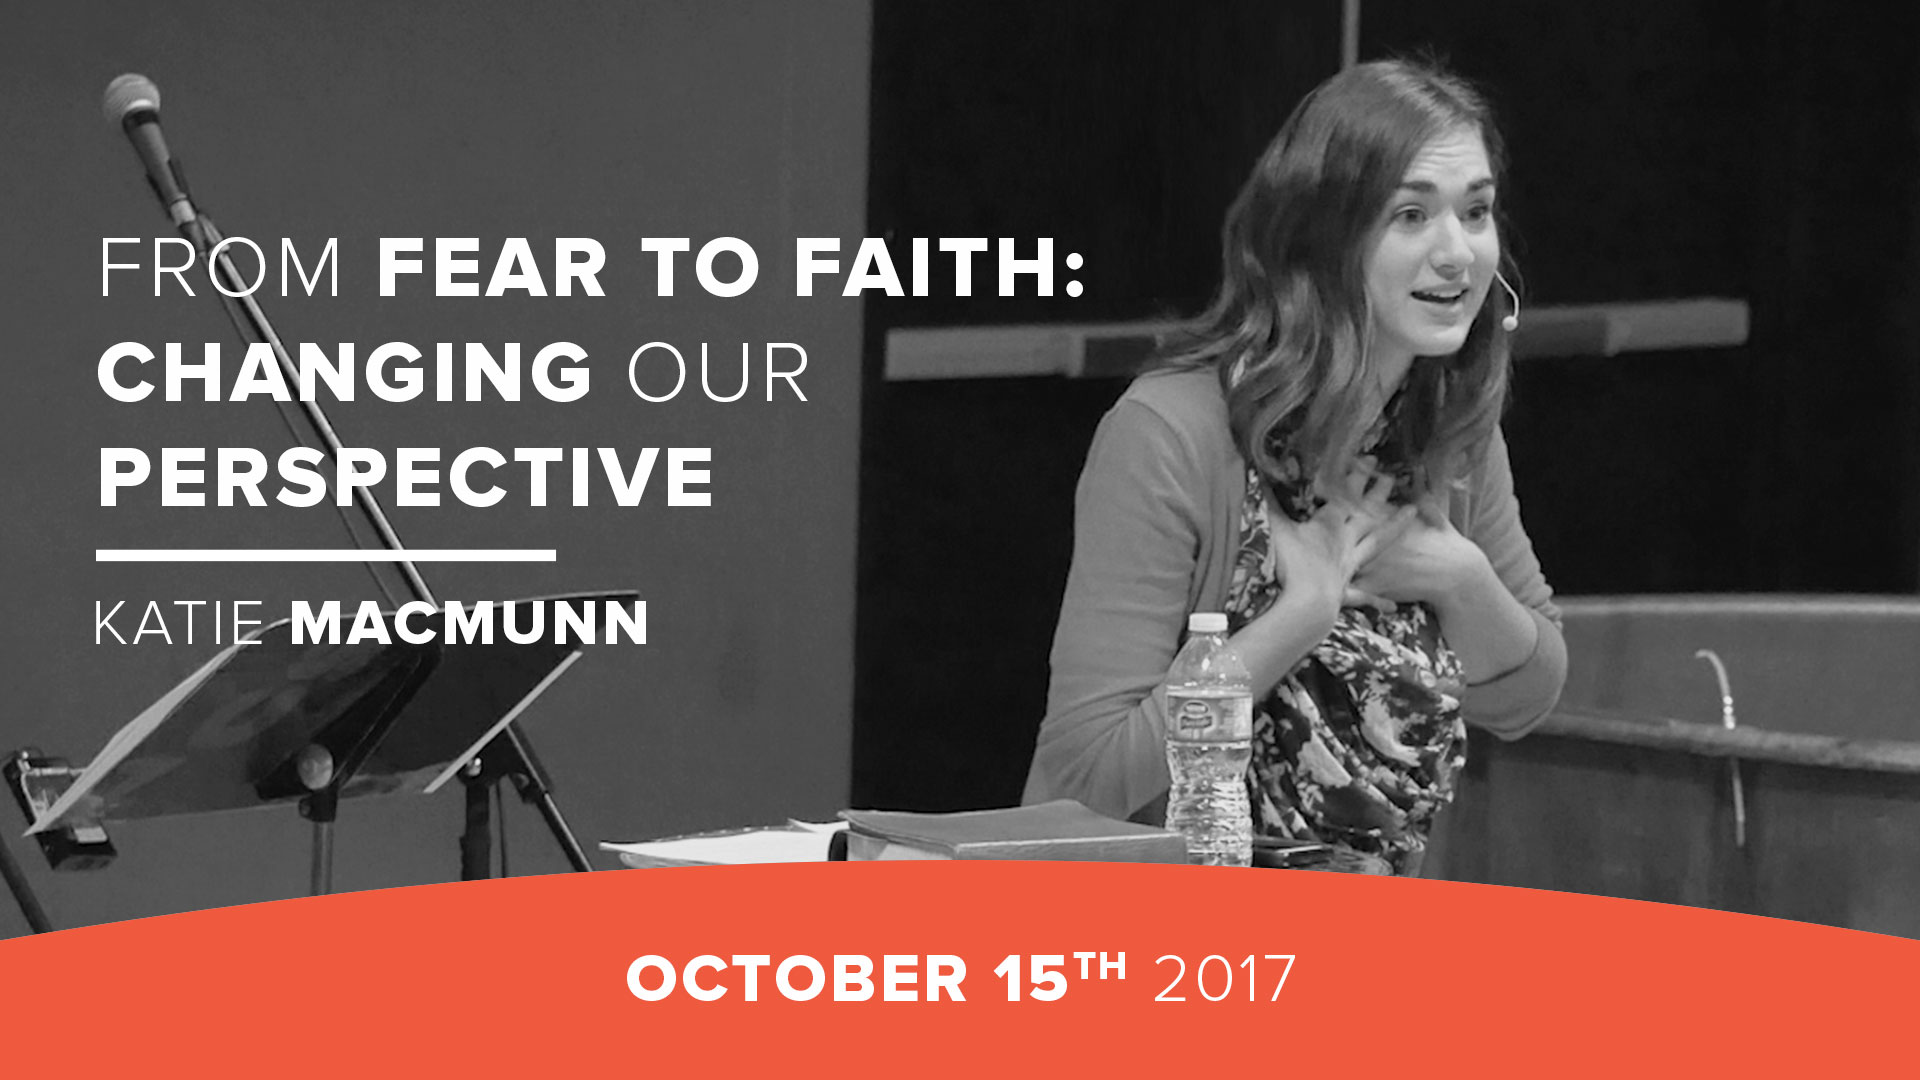 From Fear to Faith: Changing Our Perspective